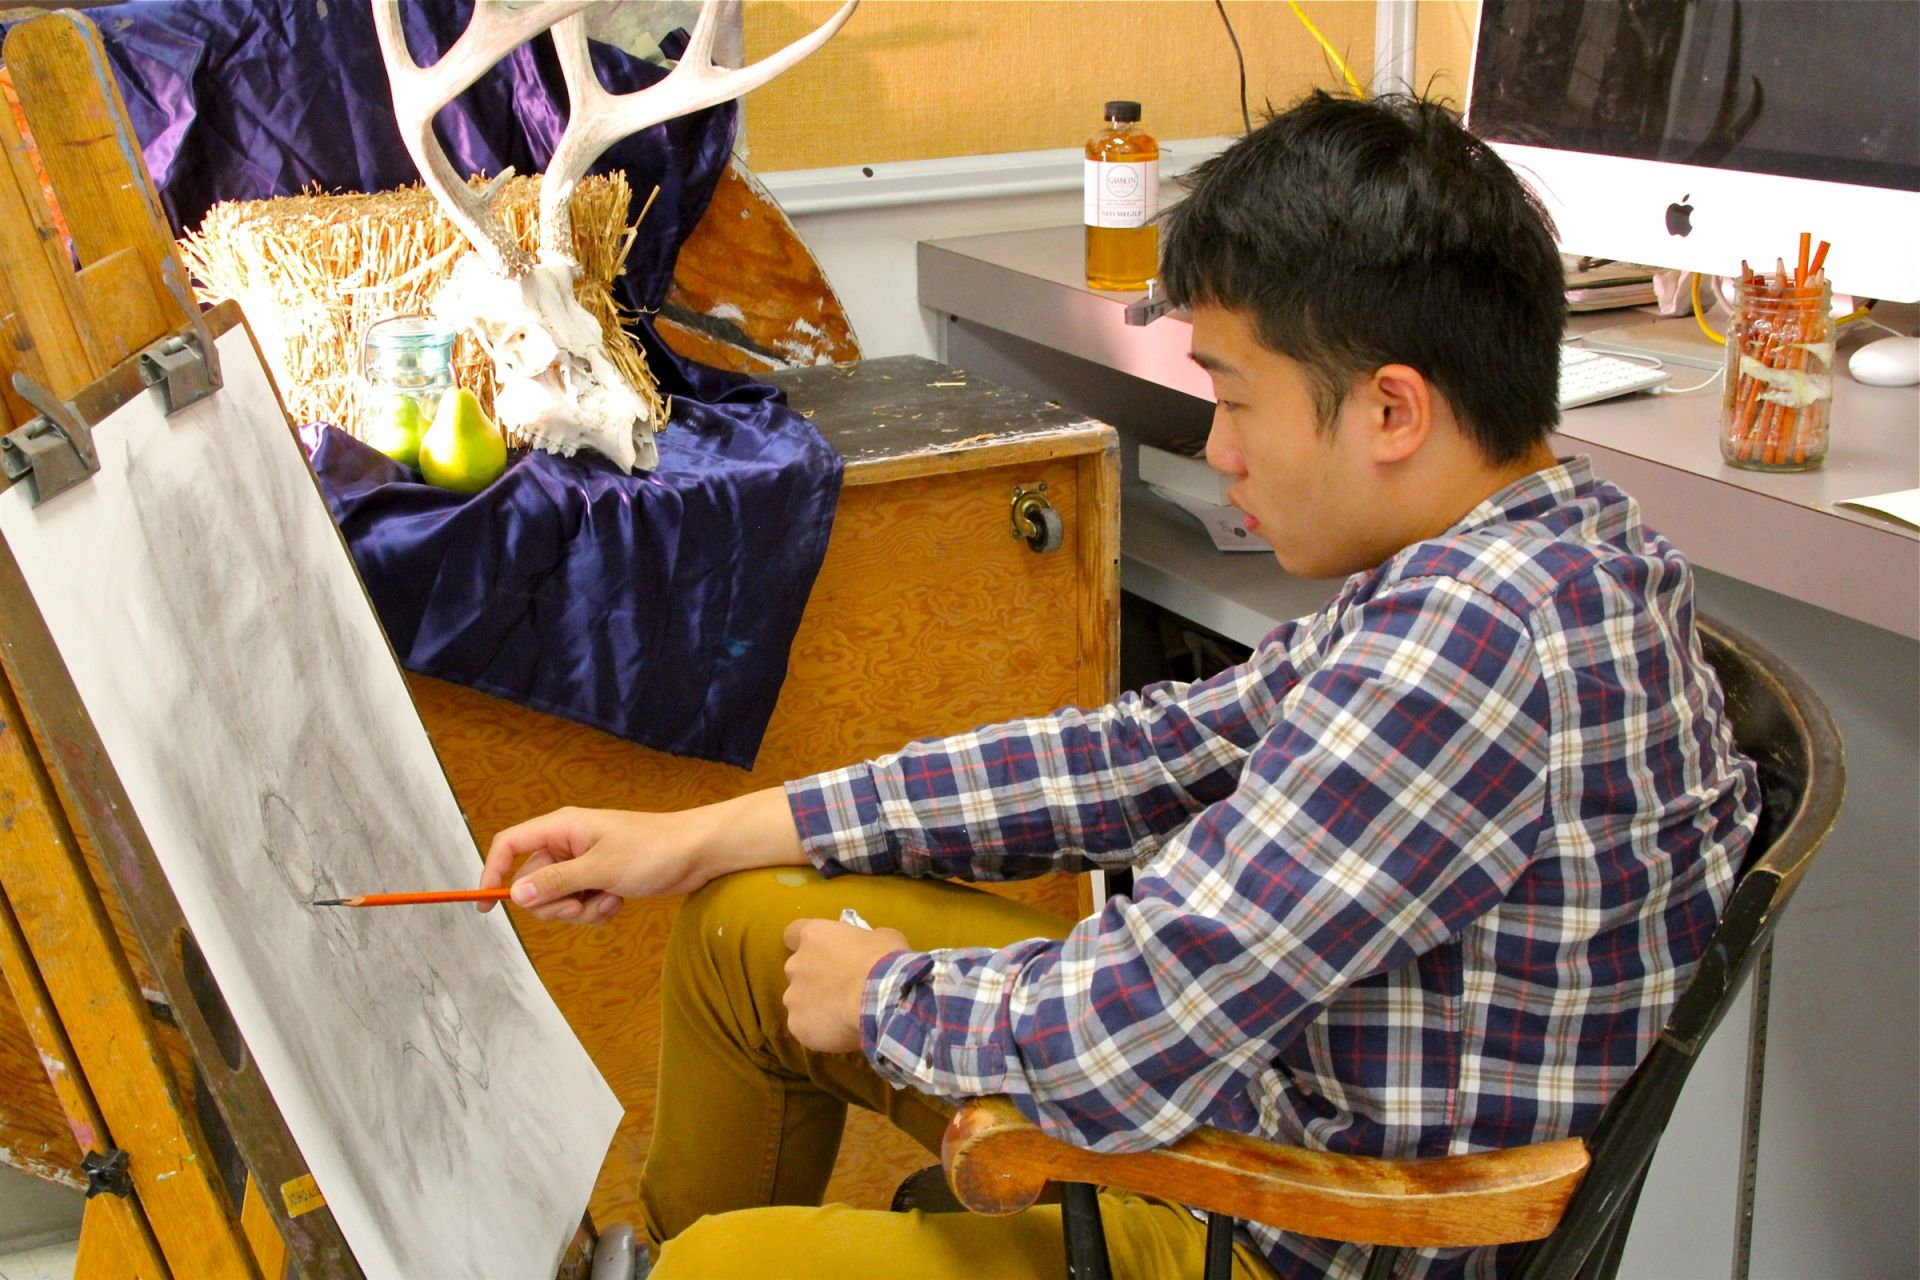 Three studios are available for students to explore and create original art.